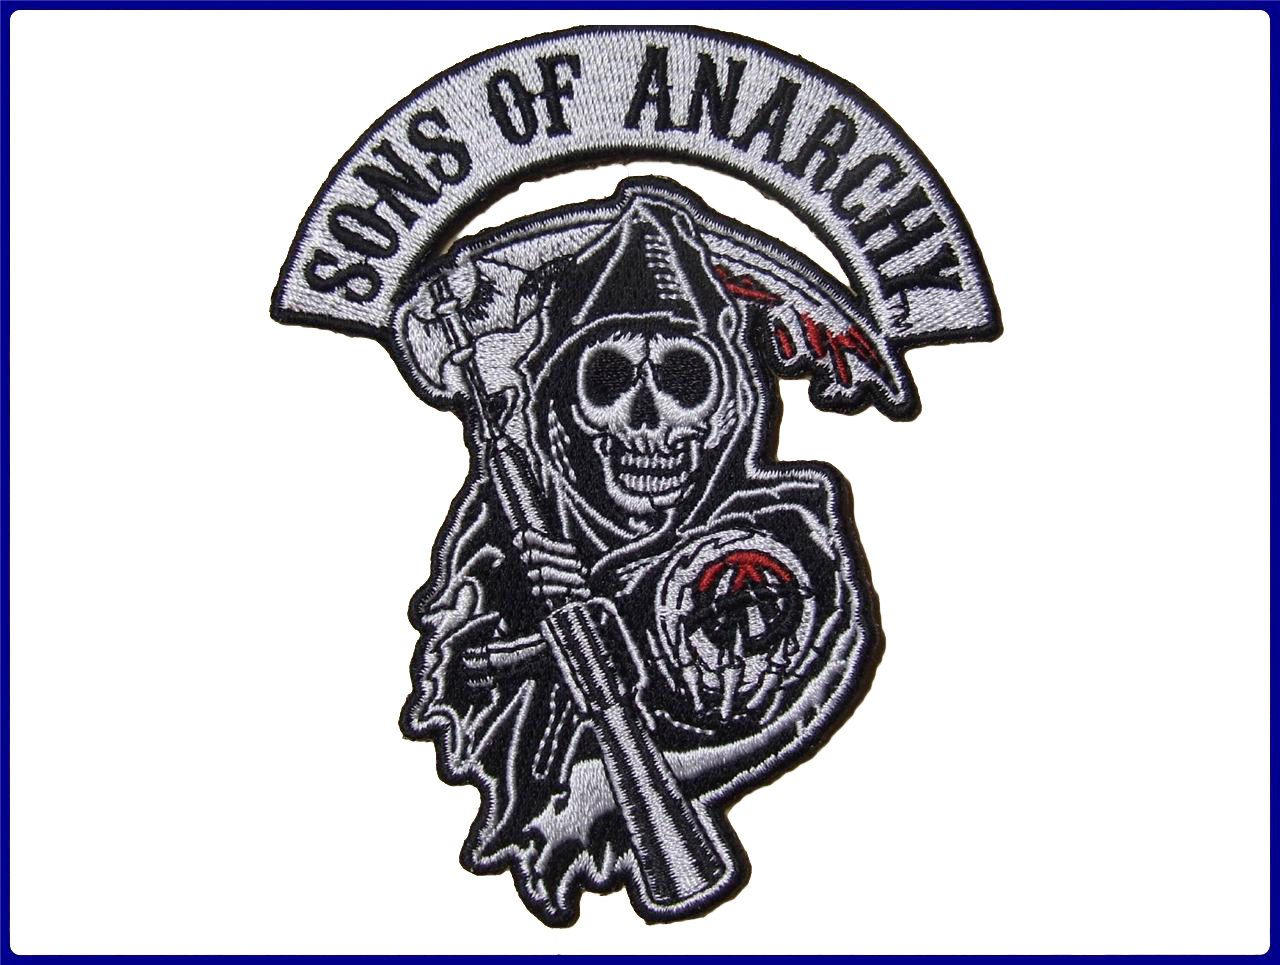 Sons Of Anarchy Soa Reaper Logo Embroidered Patch By Diablopatch 3 99 Sons Of Anarchy Iron On Applique Anarchy